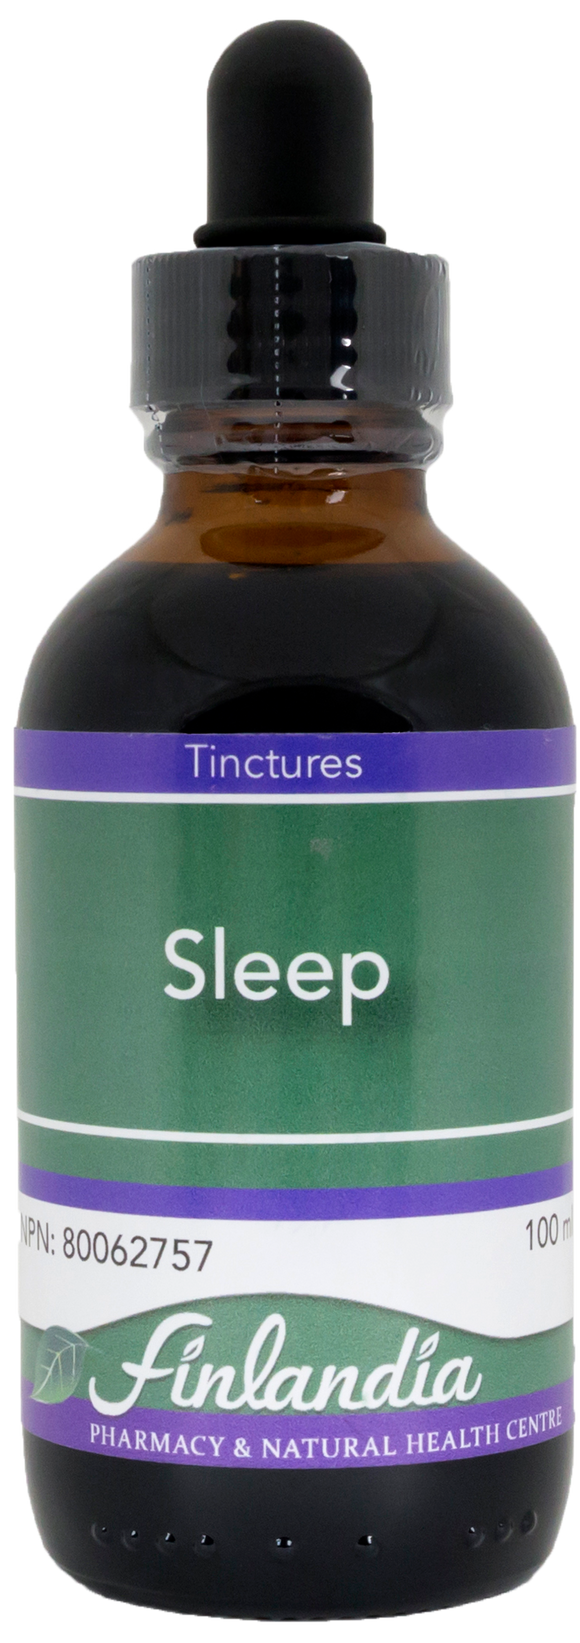 Sleep tincture